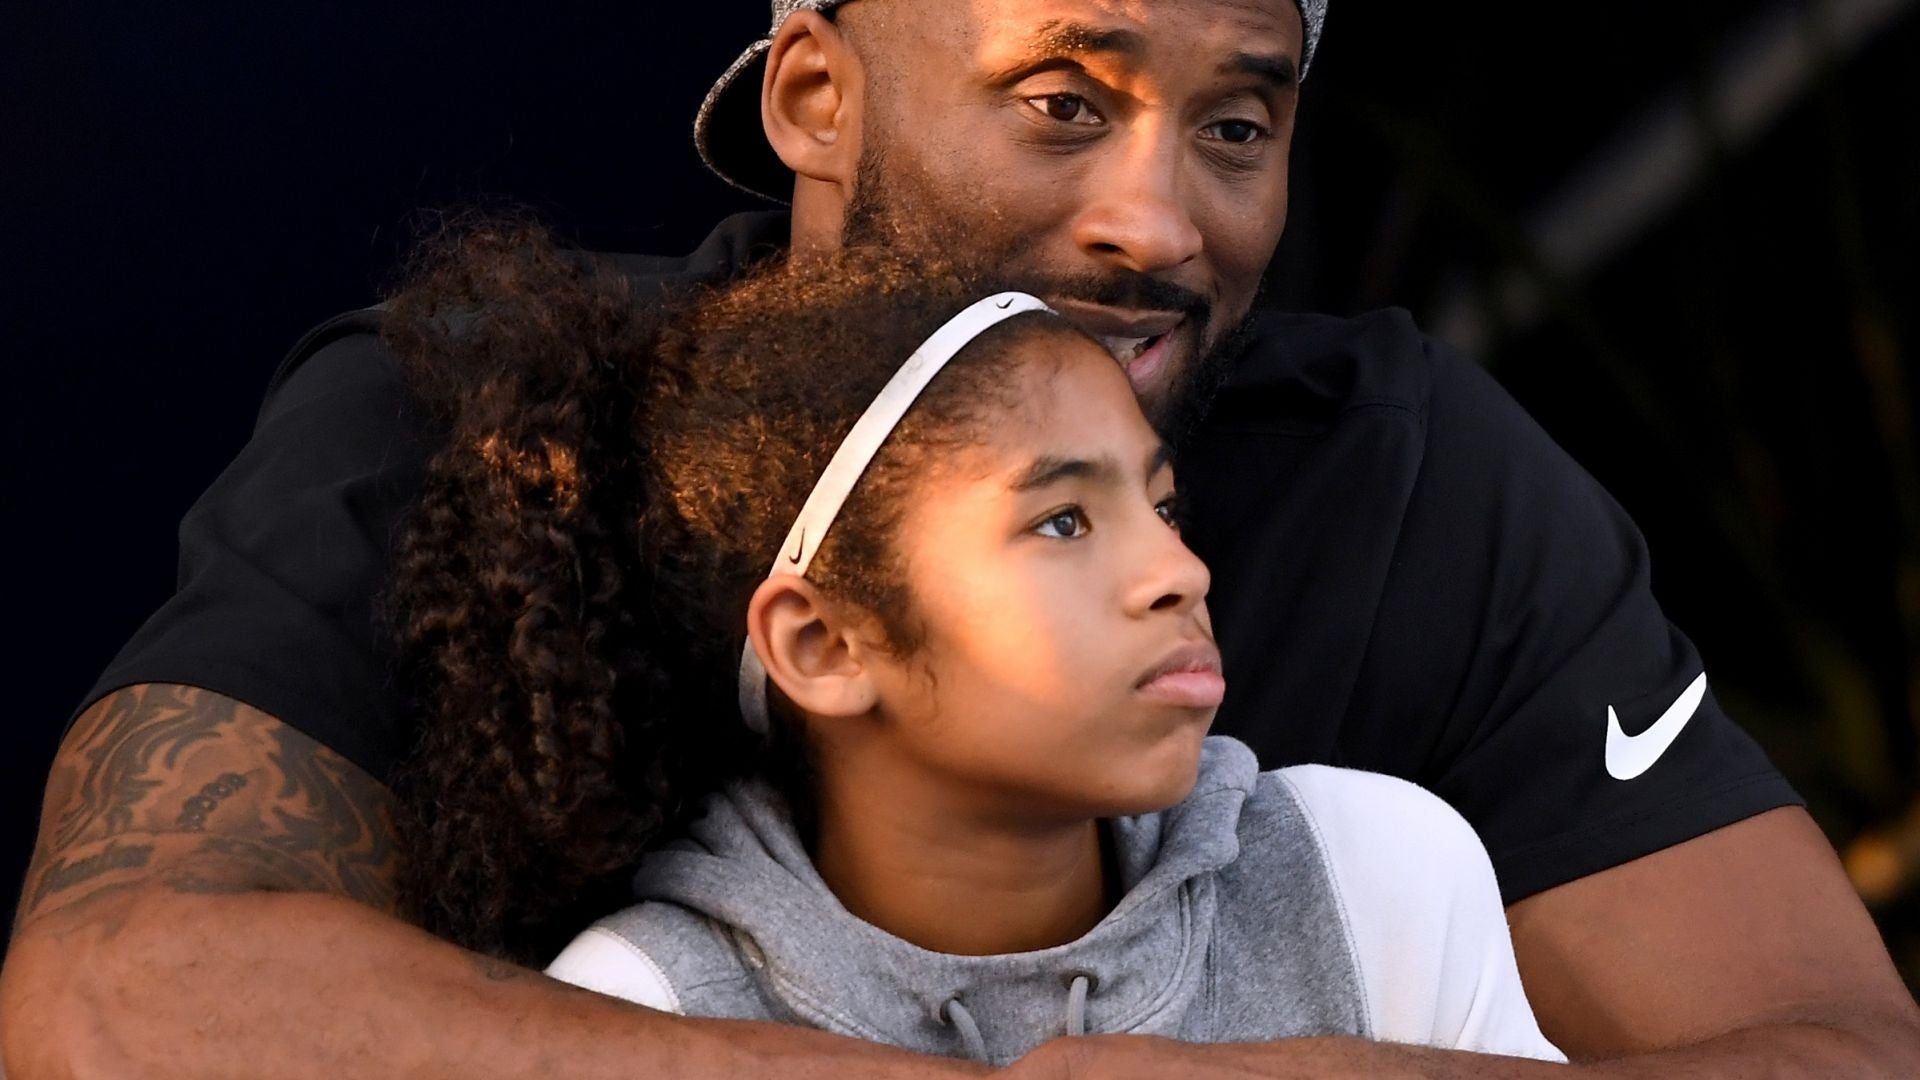 Remembering Basketball Legend Kobe Bryant And His Daughter, Gianna Bryant